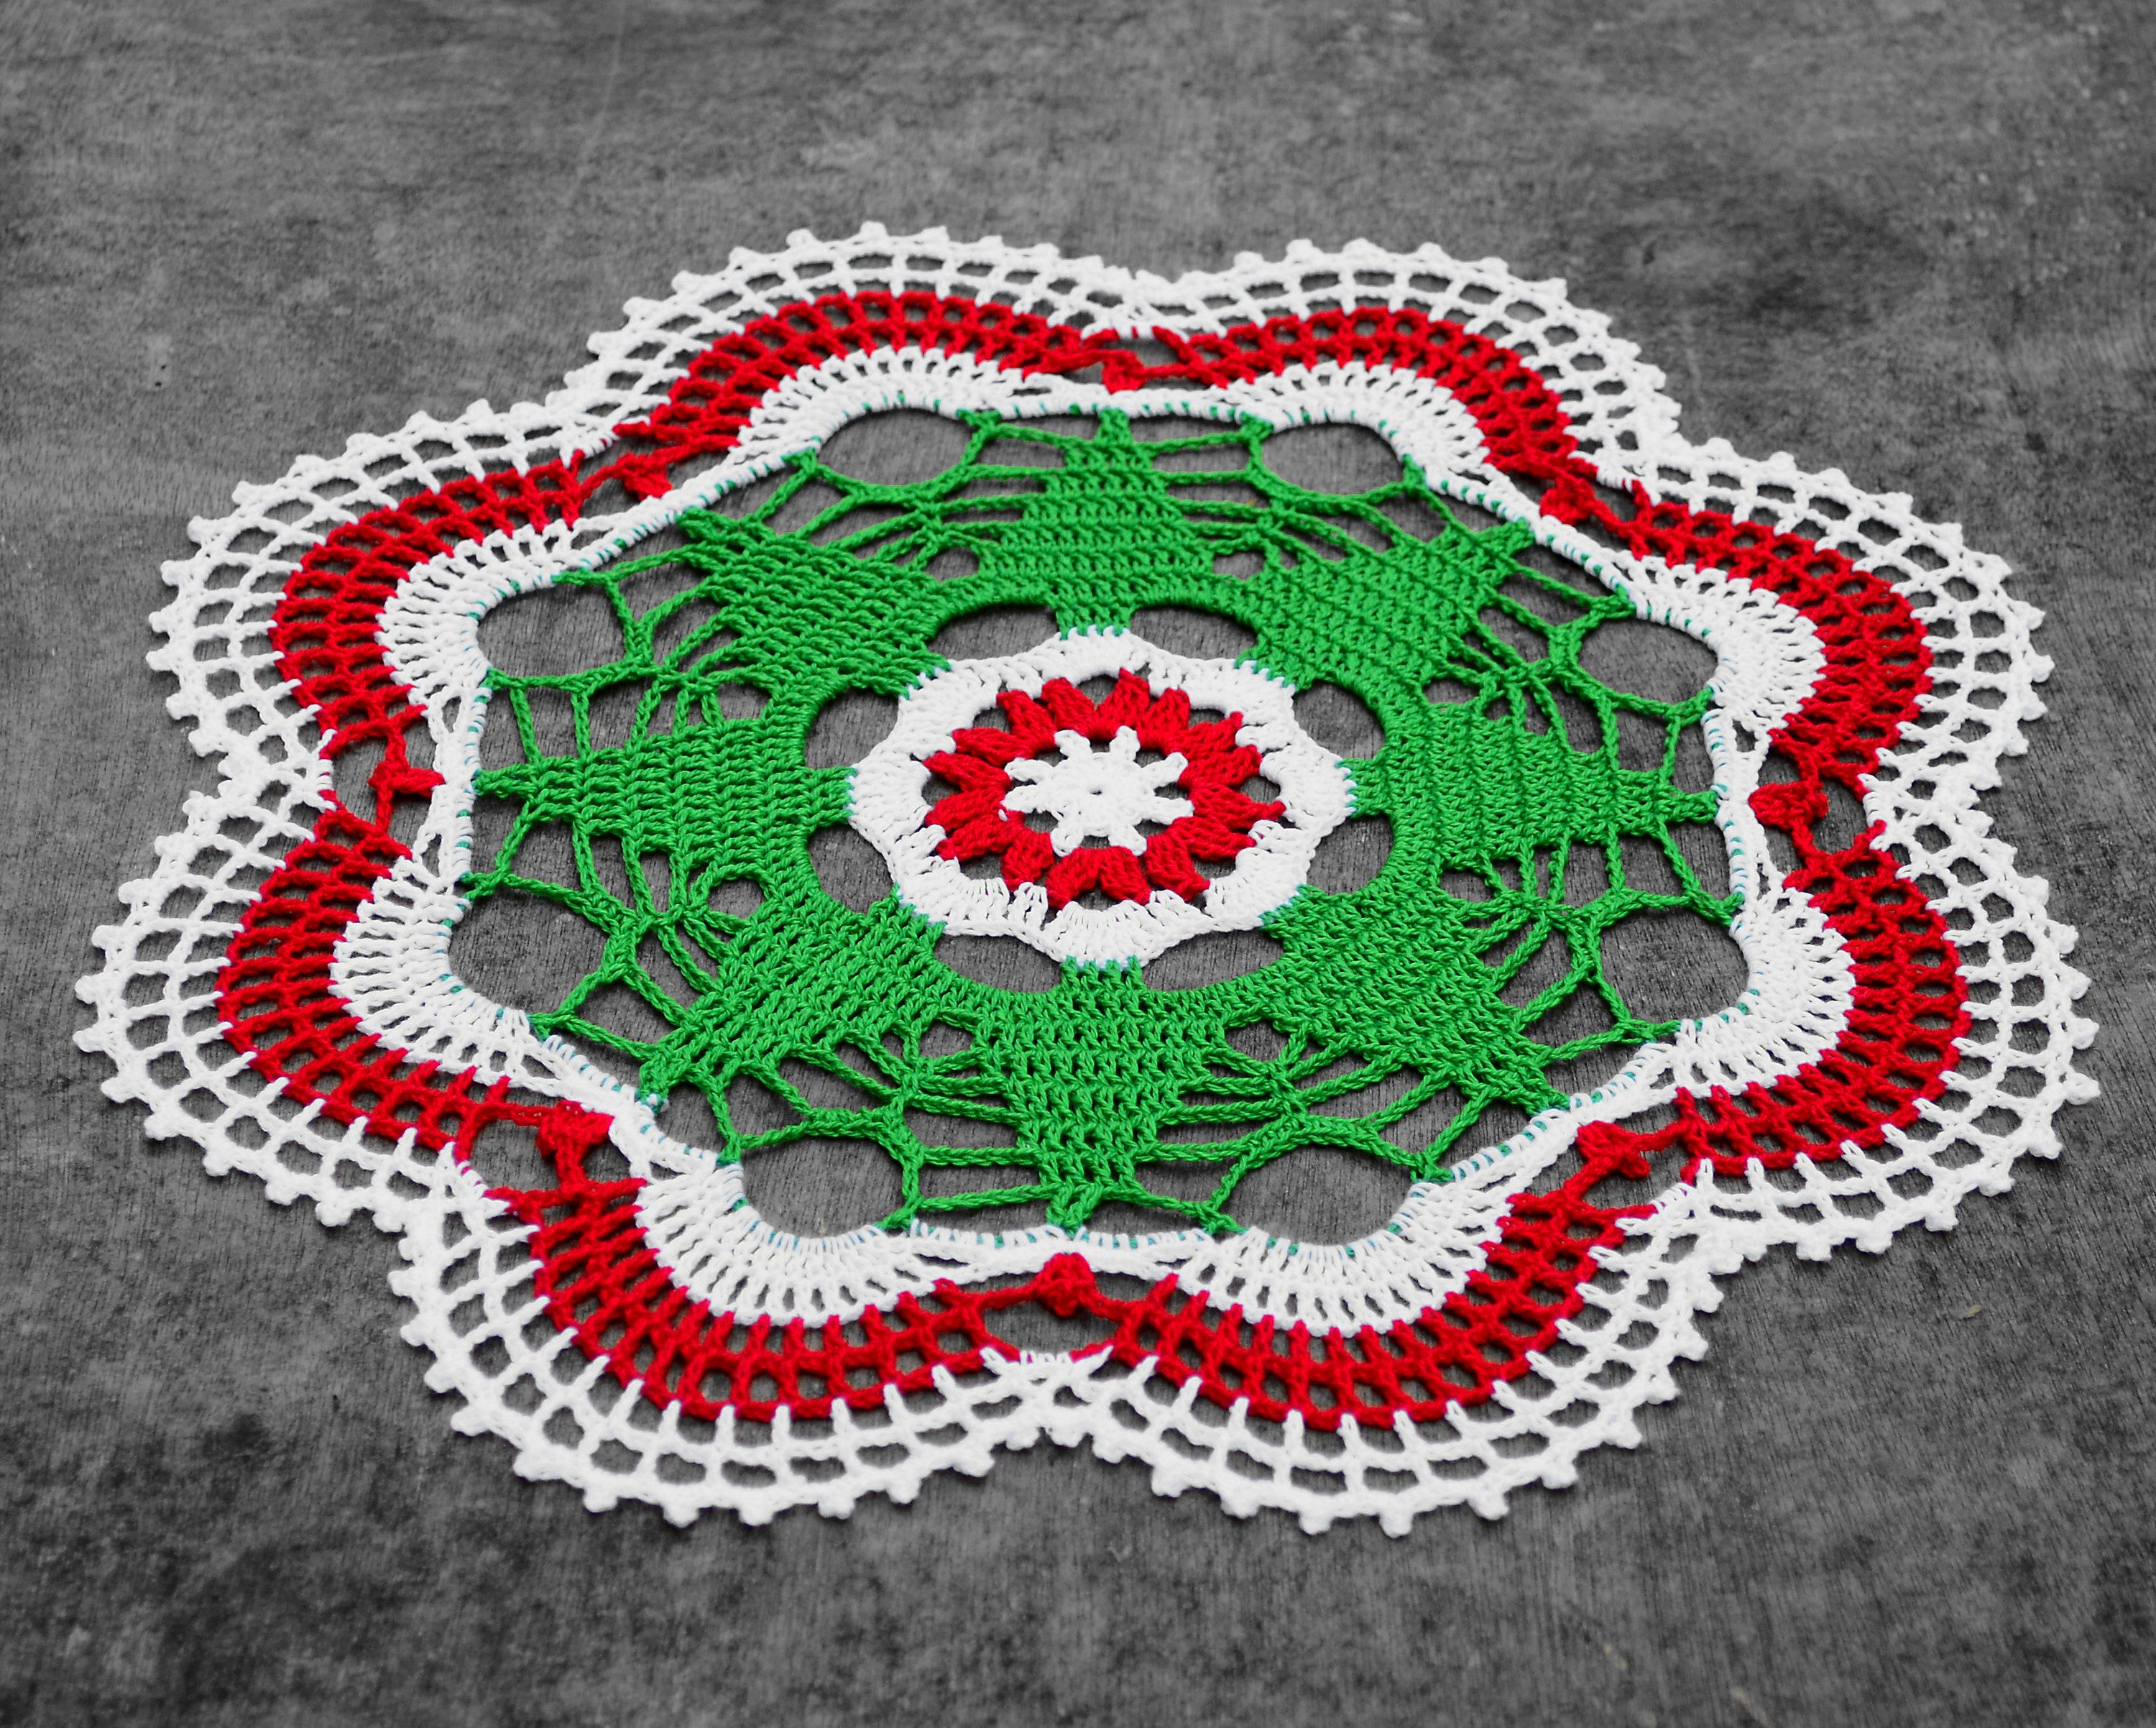 Christmas Tree Doily Christmas Doily Holiday Doily Red Etsy In 2020 Christmas Crochet Crochet Christmas Trees Crochet Table Topper